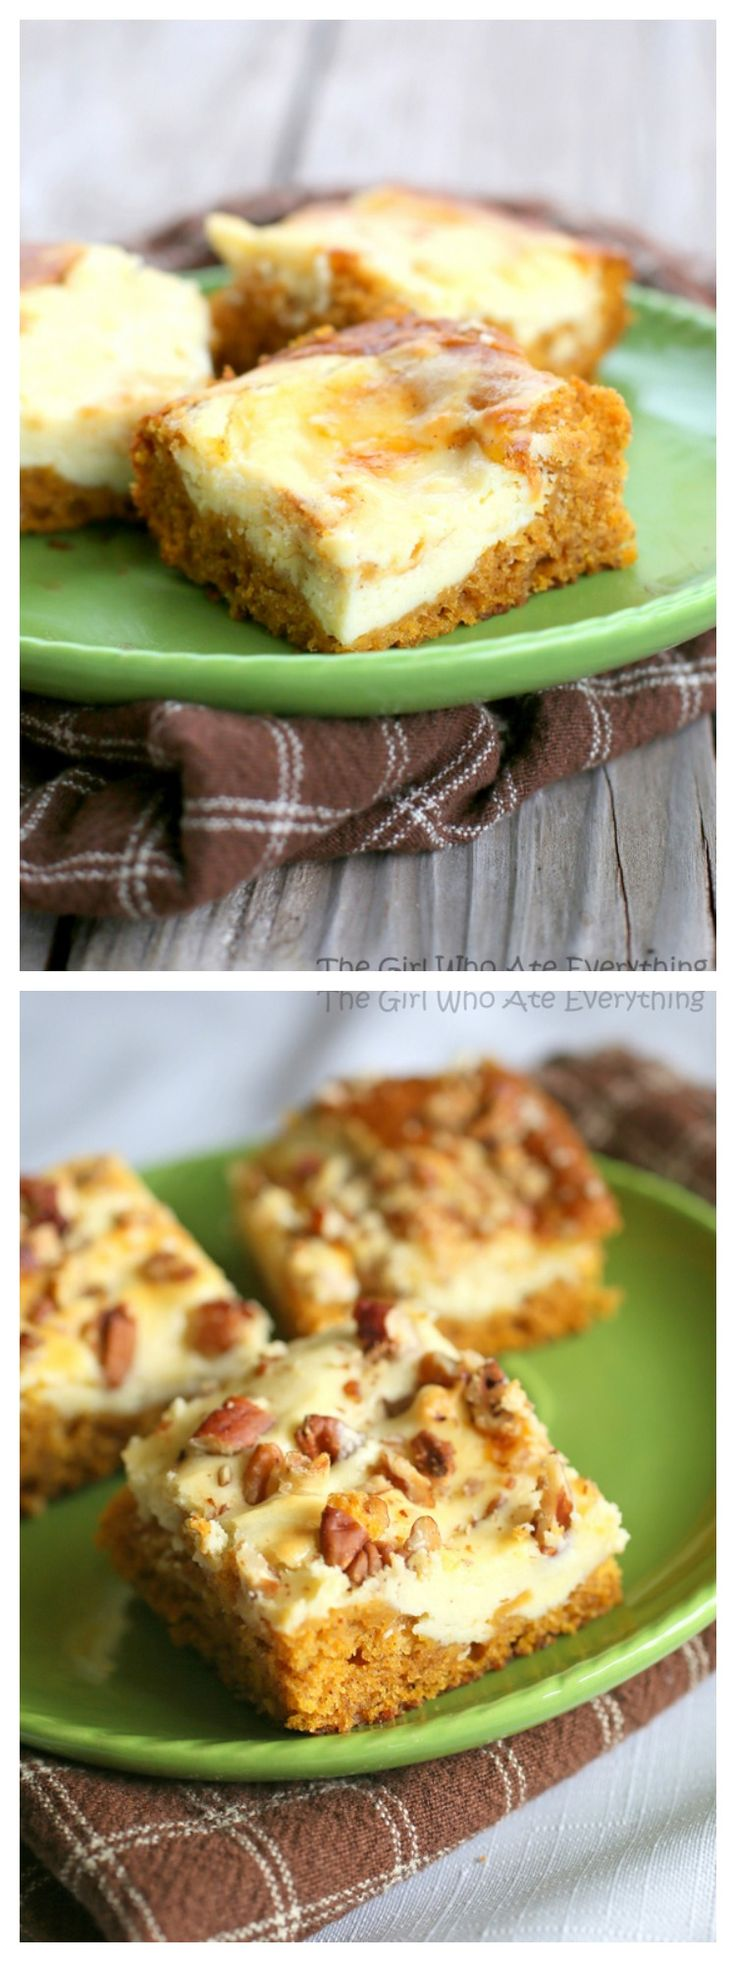 Pumpkin Cream Cheese Bars - with or without nuts. These look delicious!